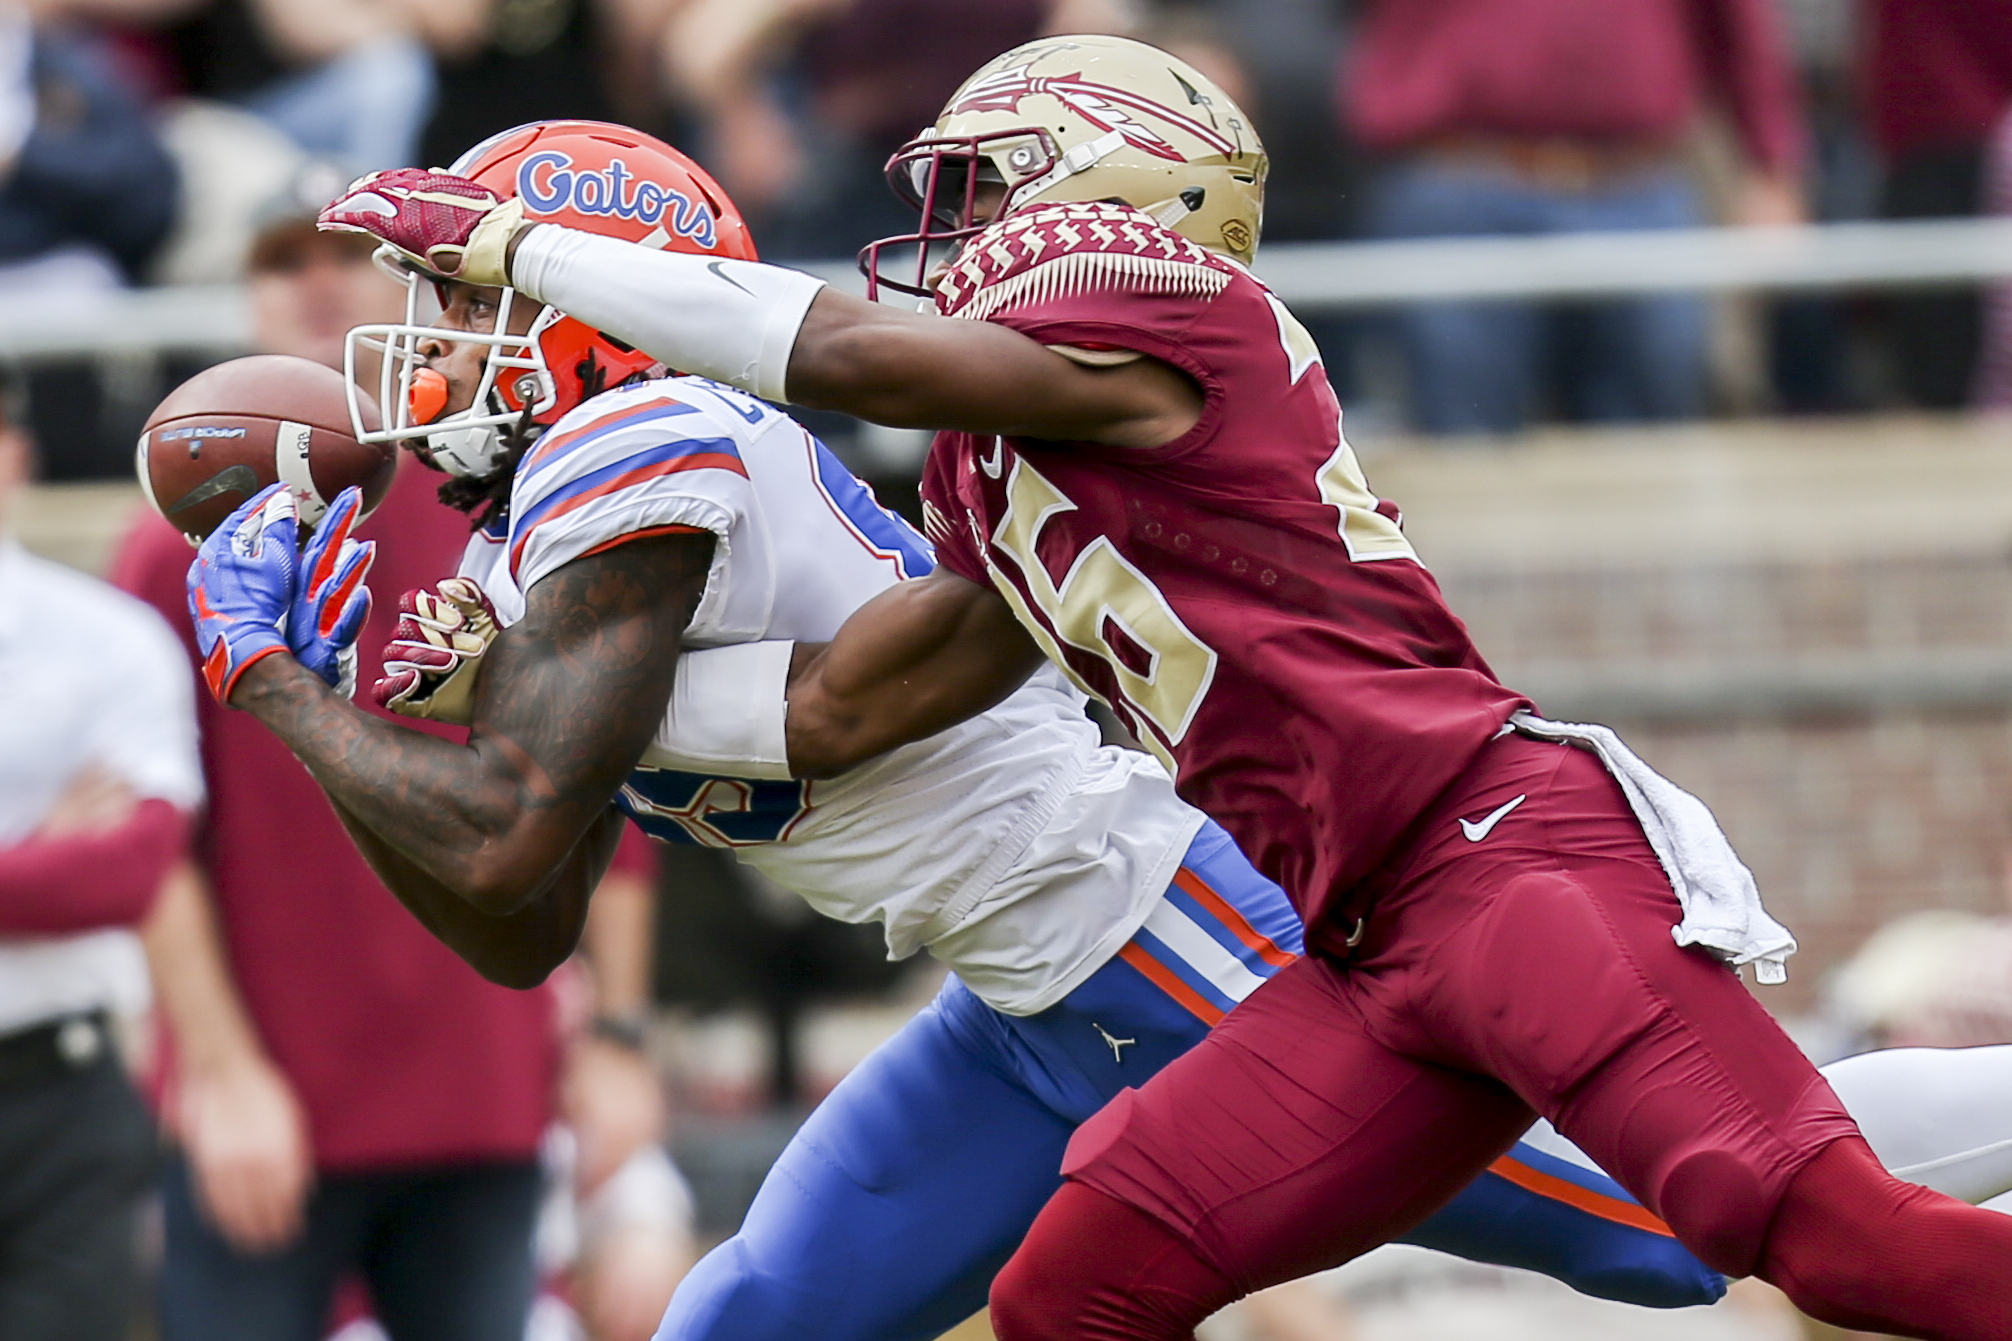 Fsu Spring 2022 Calendar.Why Did Florida And Fsu Need To Announce A Four Year Series Extension